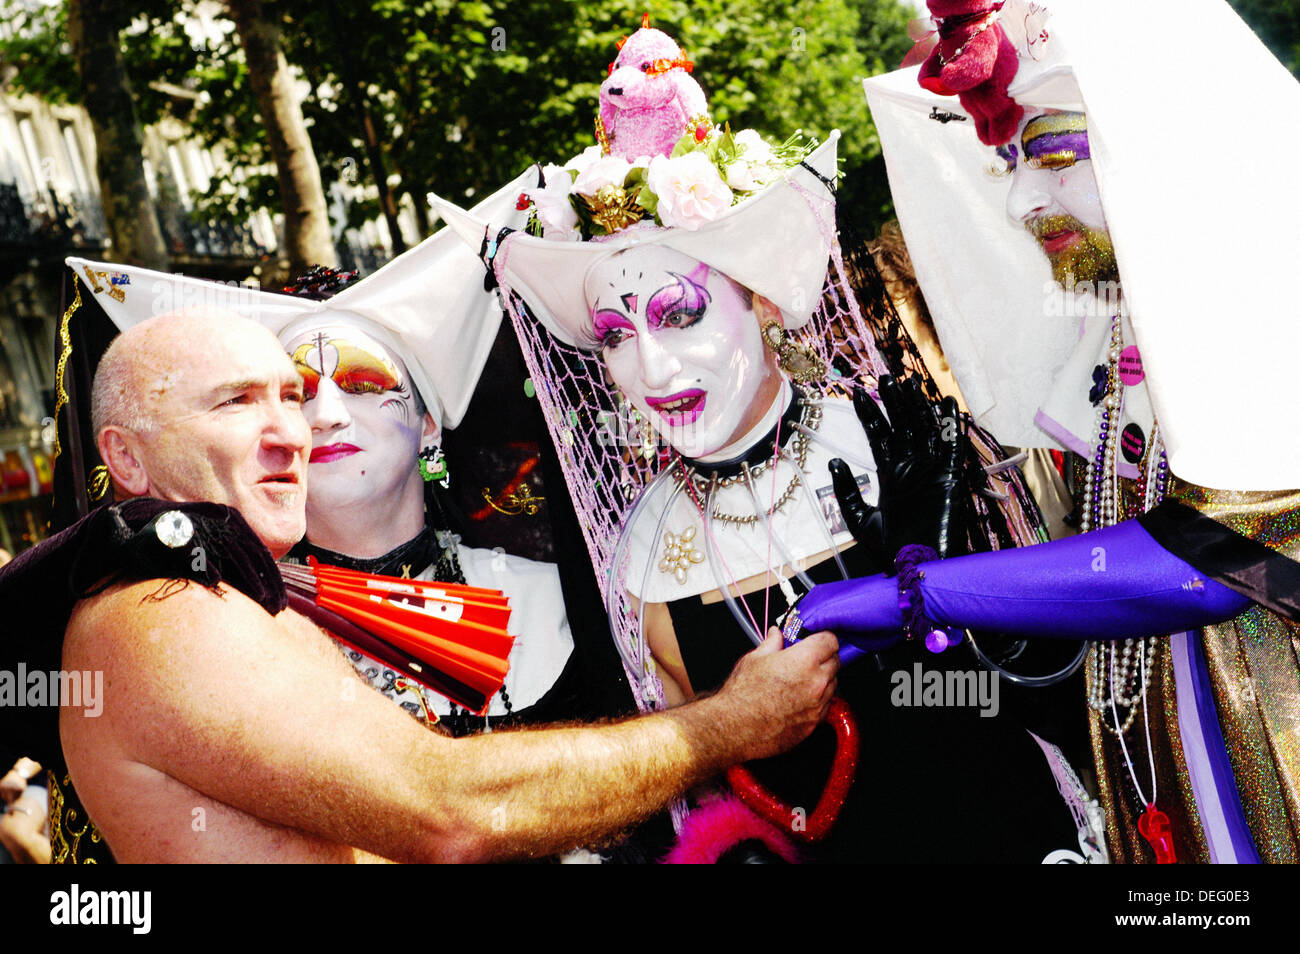 Paris Pride Parade Stock Photos & Paris Pride Parade Stock ...